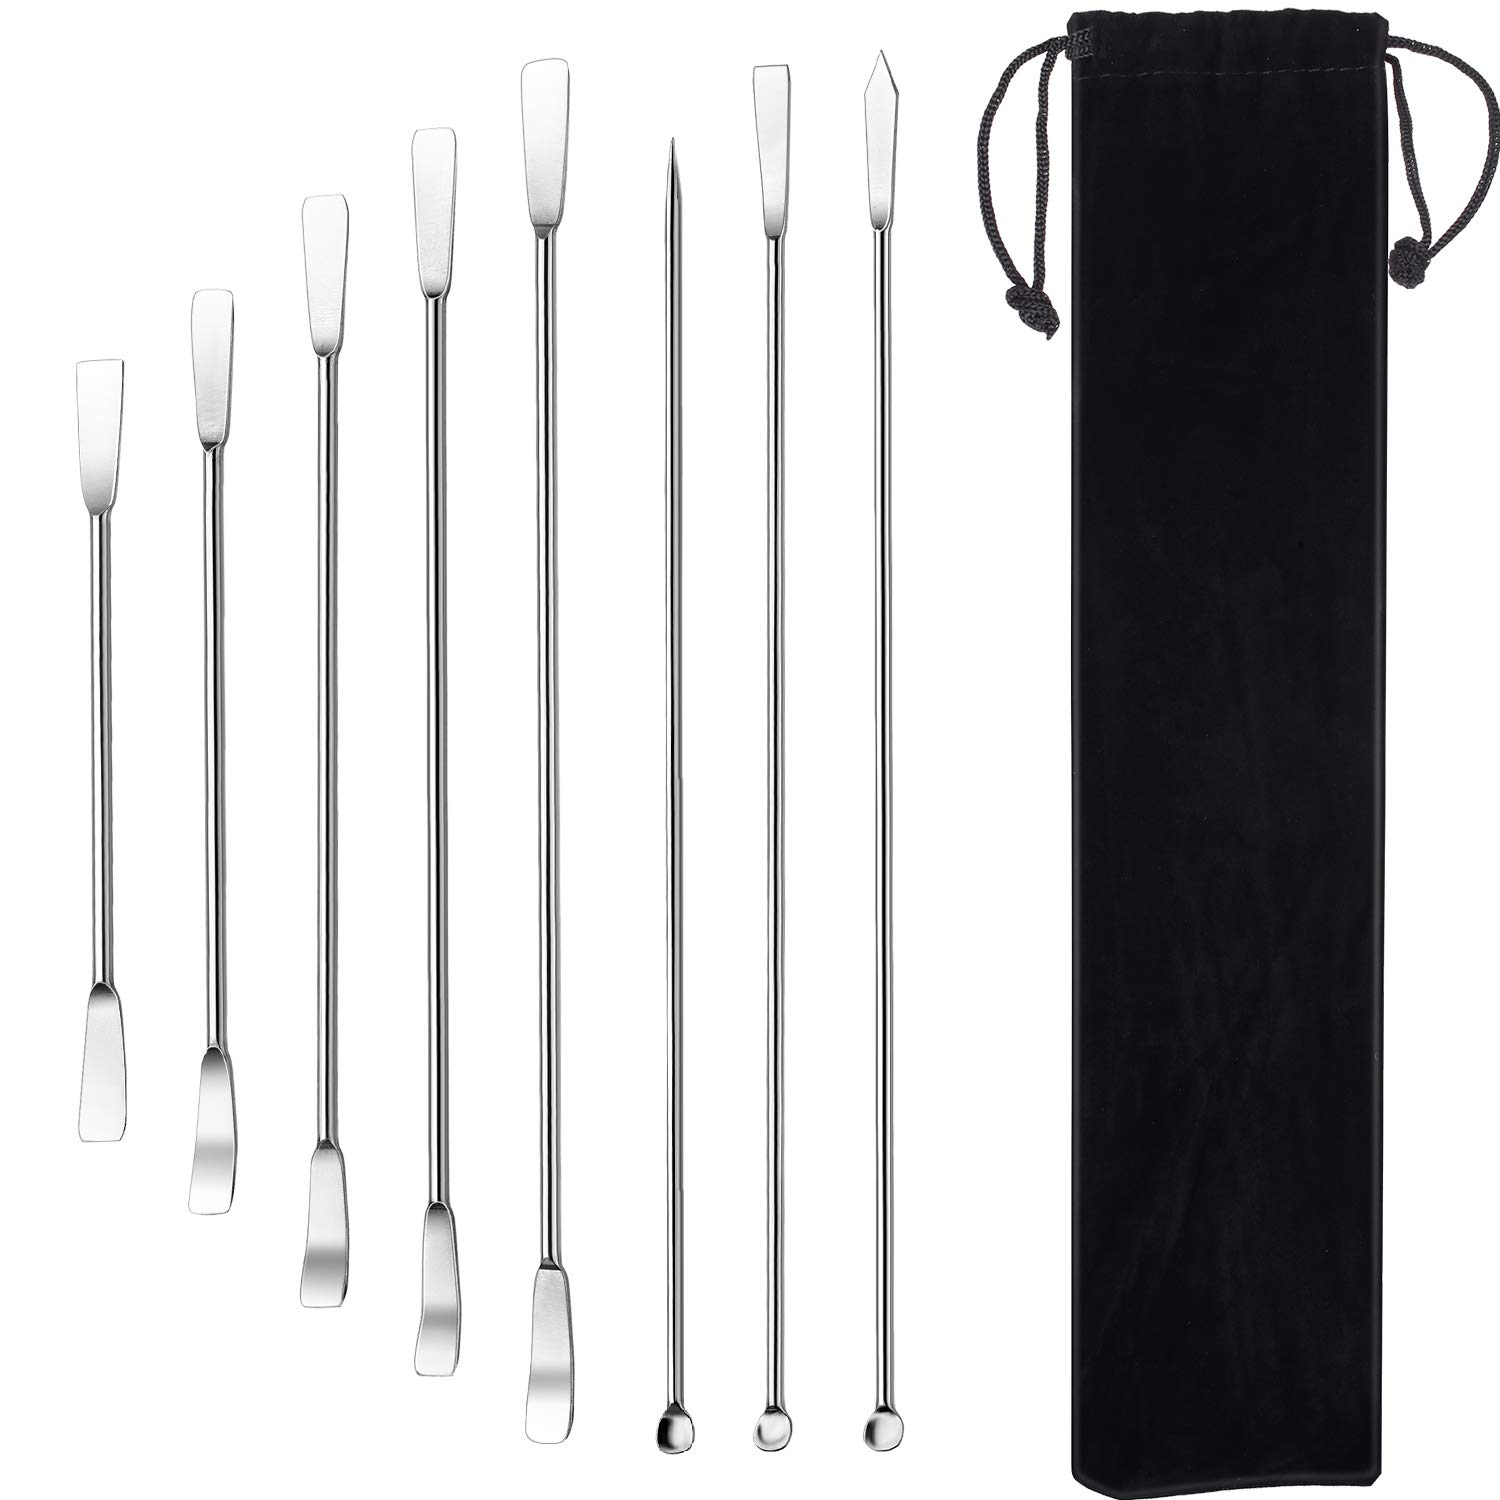 Lab Spatula Micro Scoop Max 44% OFF Steel Max 73% OFF Stainless for Po